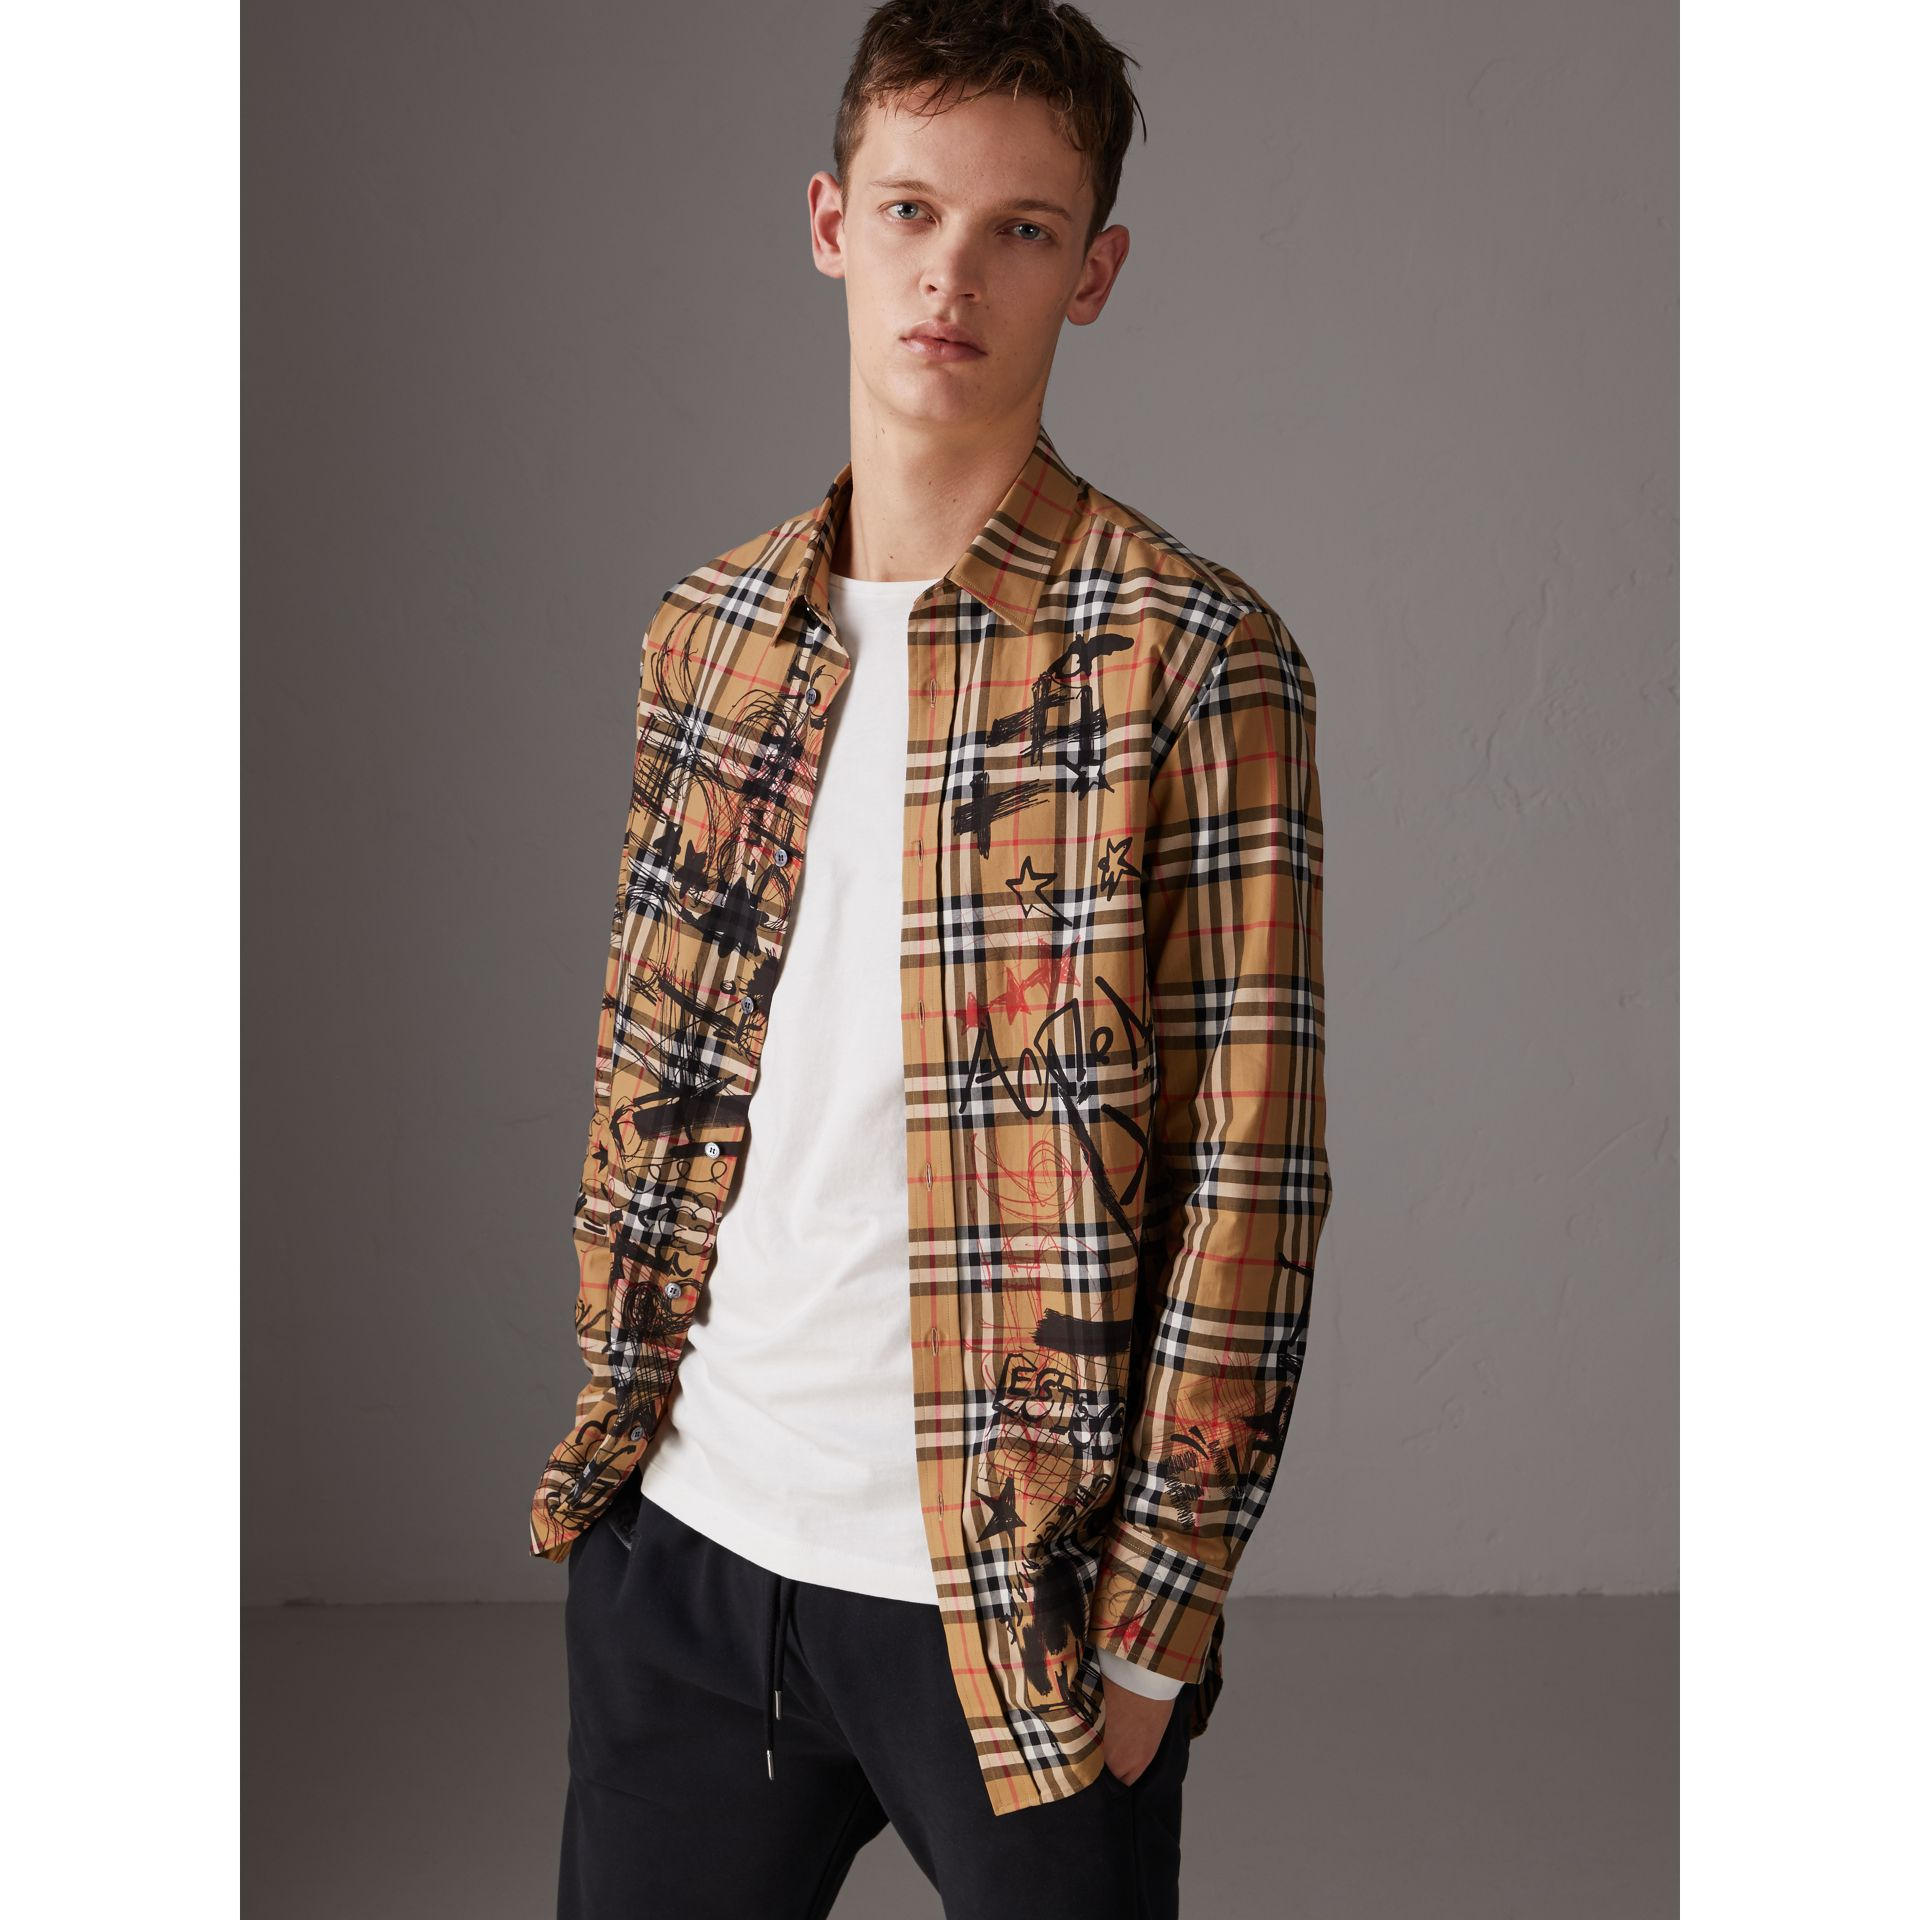 Burberry x Kris Wu Vintage Check Cotton Shirt in Antique Yellow - Men | Burberry United Kingdom - gallery image 5